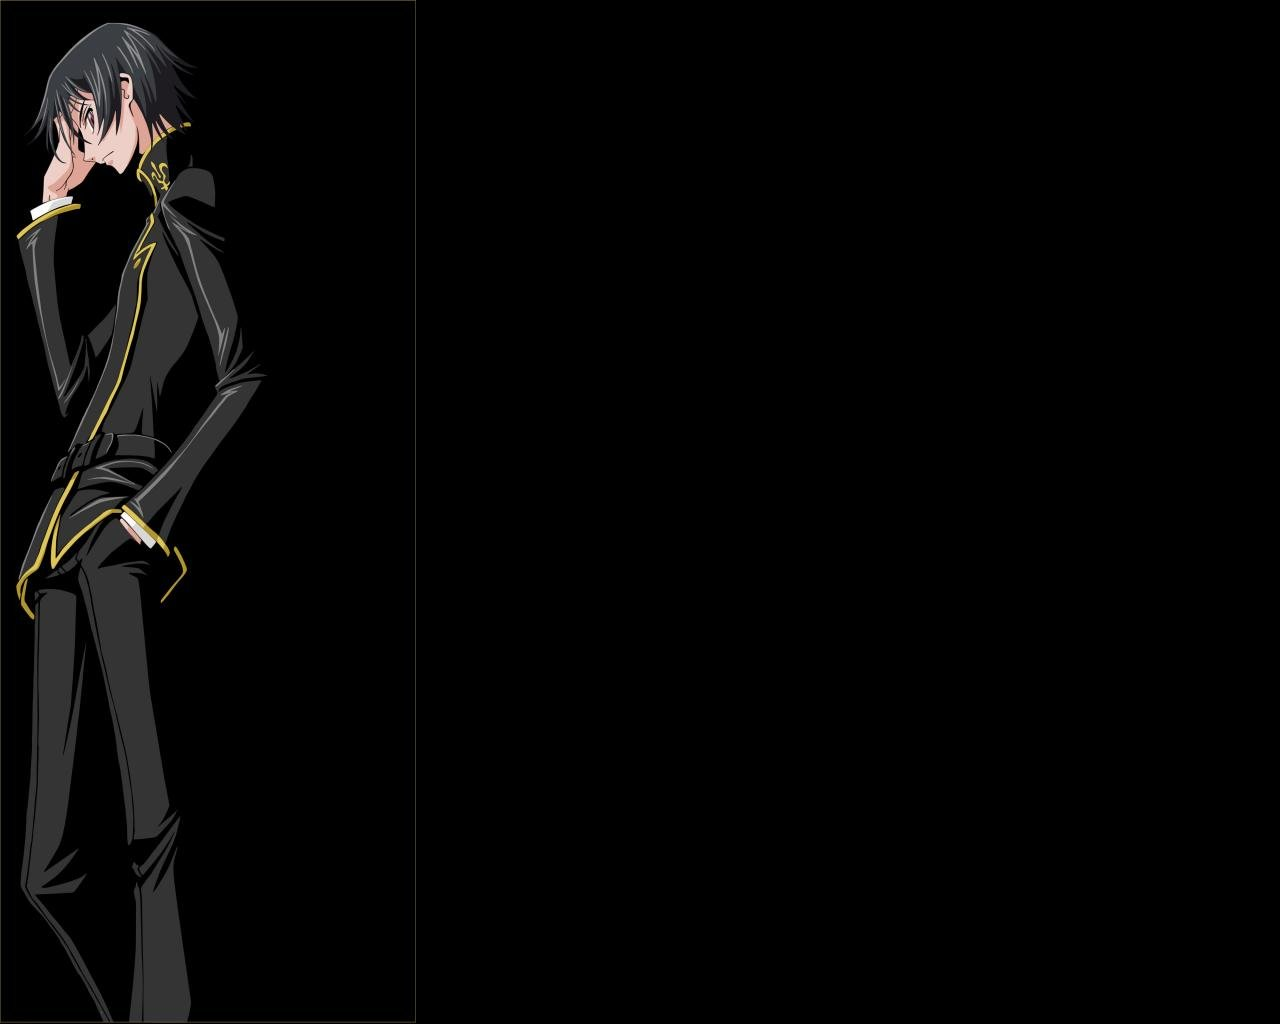 Download hd 1280x1024 Lelouch Lamperouge computer wallpaper ID:44263 for free